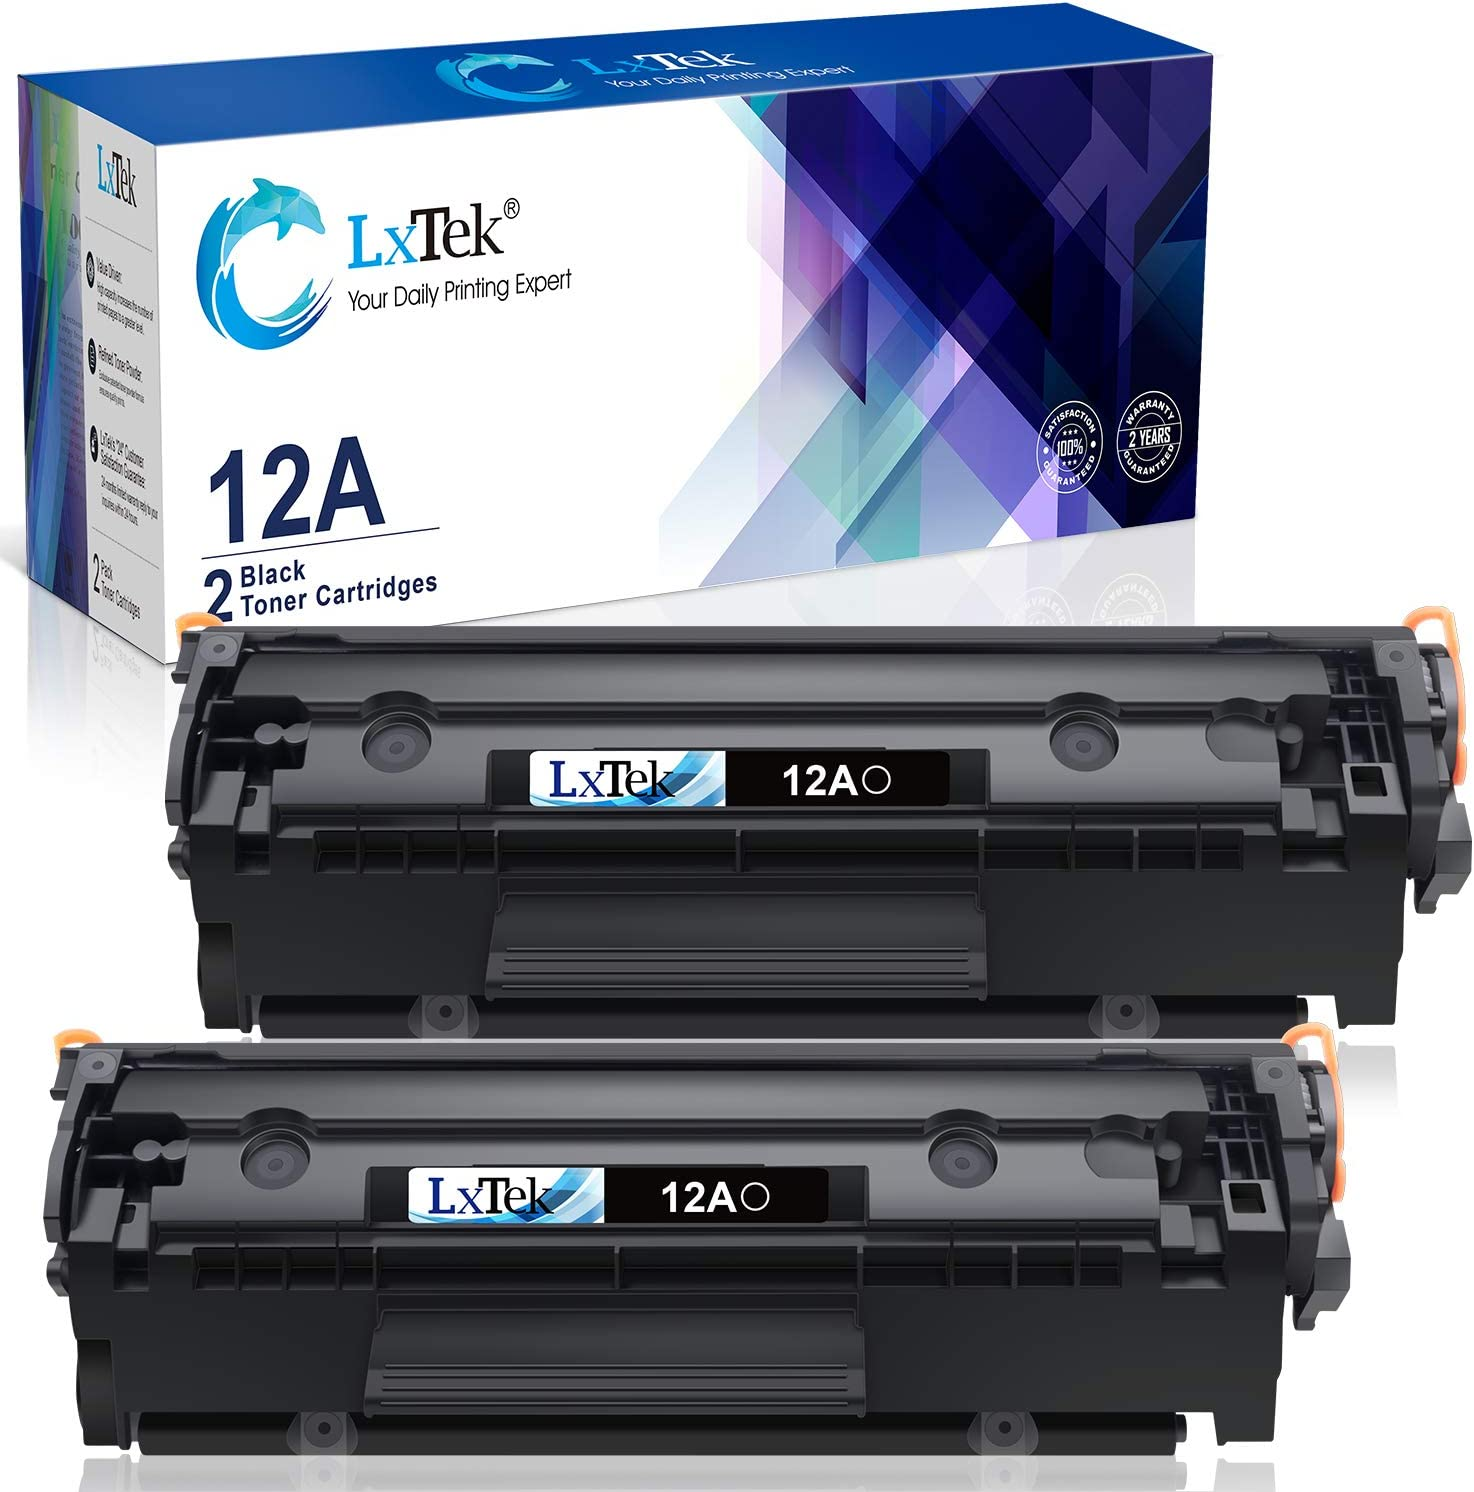 LxTek Compatible Toner Cartridge Replacement for HP 12A Q2612A to use with Laserjet 1012 1022 1020 1018 1022N 1010 3015 3050 3030 3052 3055 M1319F Printers (2 Black, High Yield)